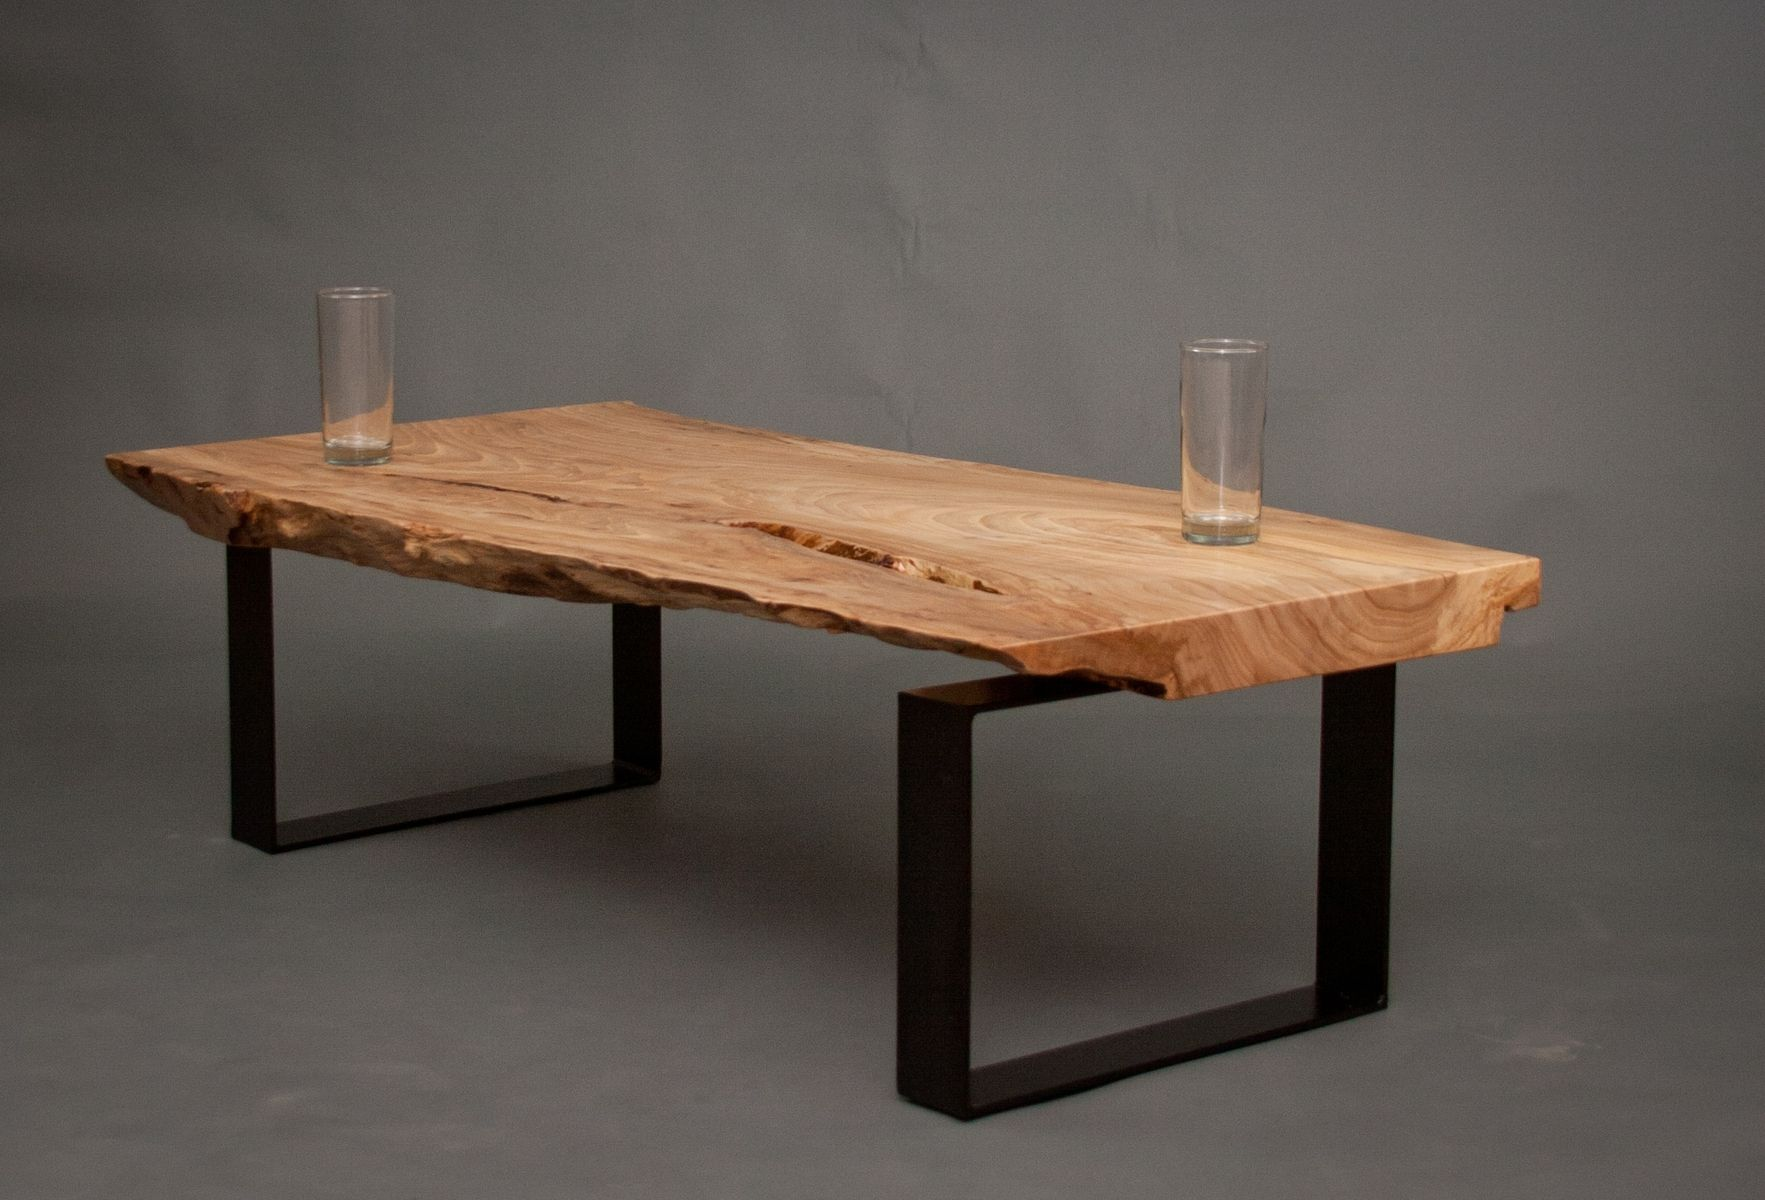 Ellington - Reclaimed Elm Wood Coffee Table by Blake Paine